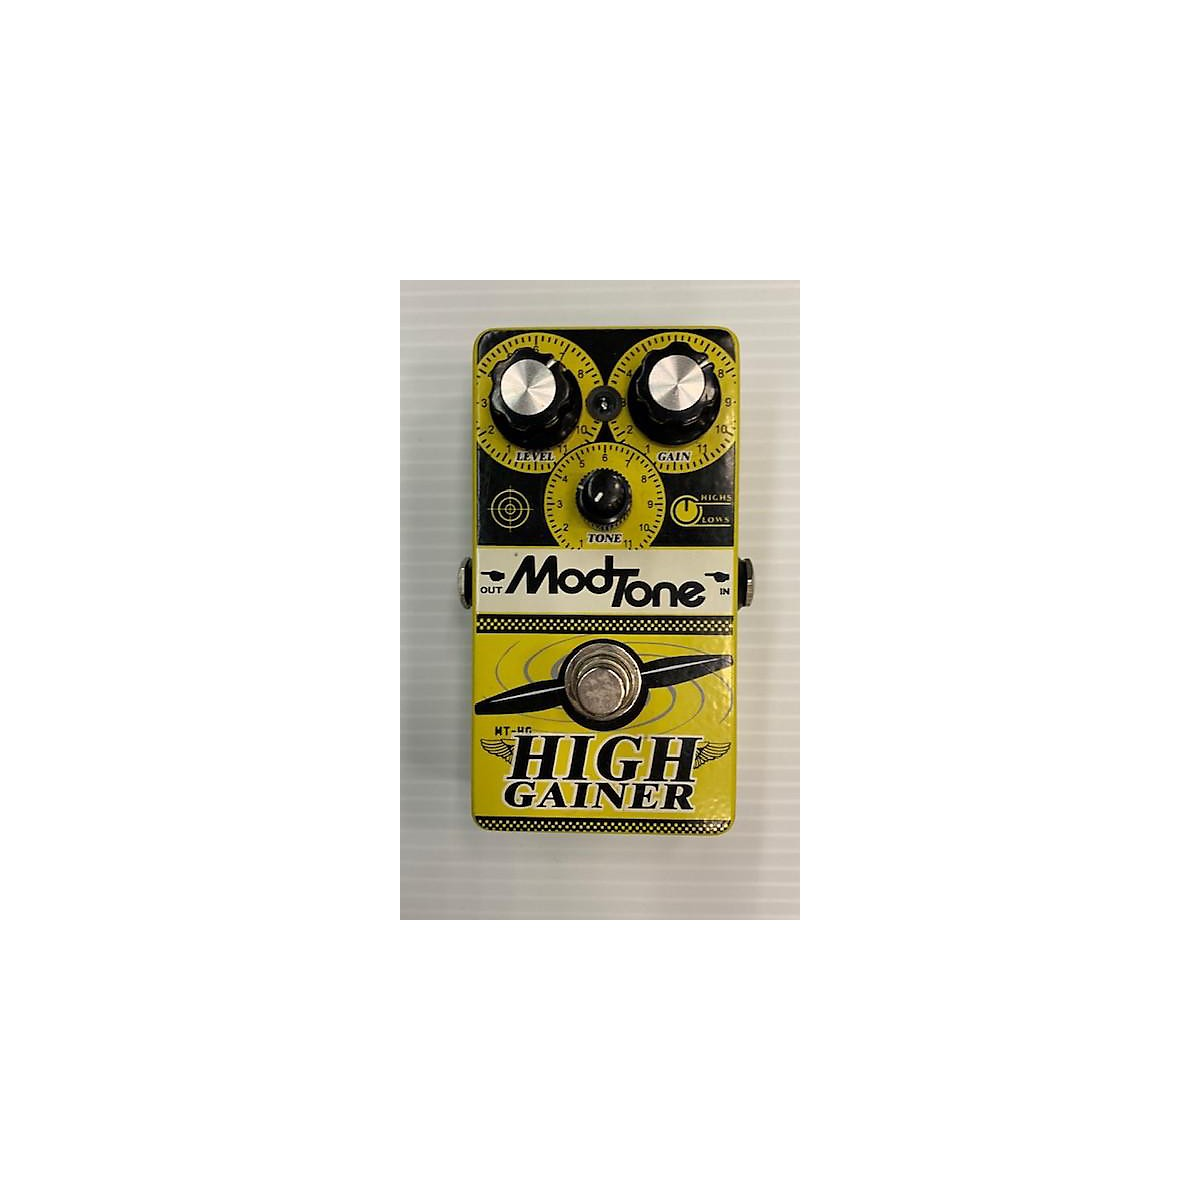 Modtone High Gainer Pedal